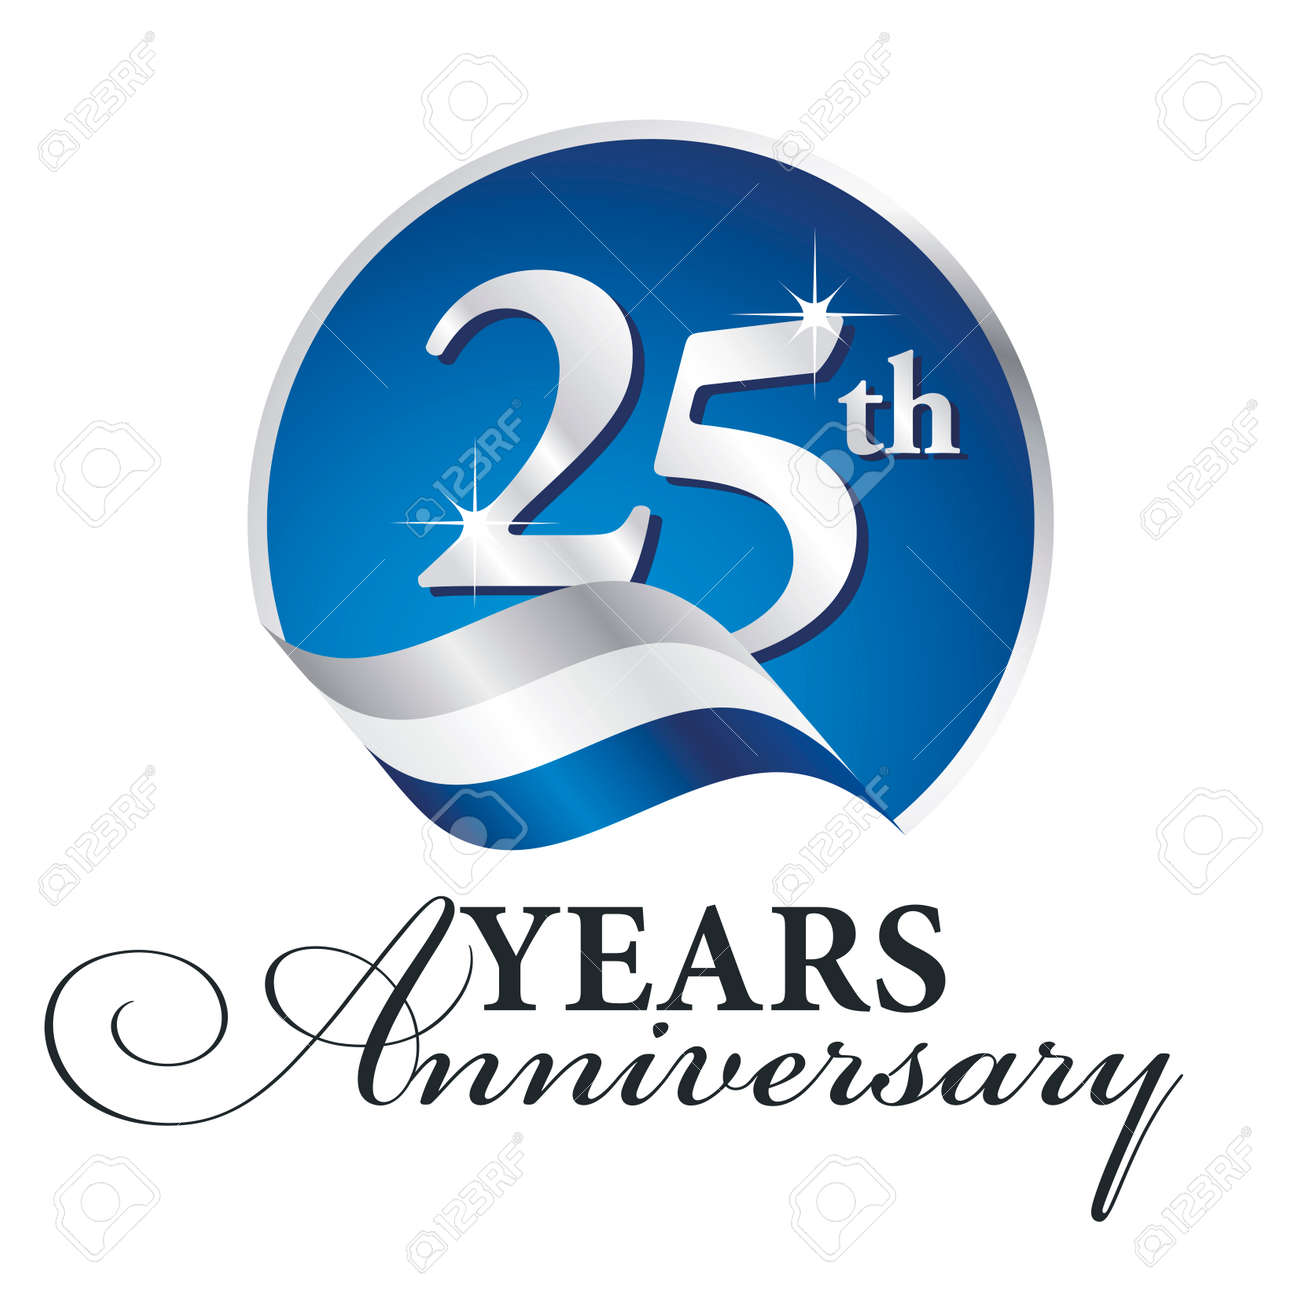 anniversary 25 th years celebrating logo silver white blue ribbon rh 123rf com 25th anniversary logo vector 25th anniversary logo vector